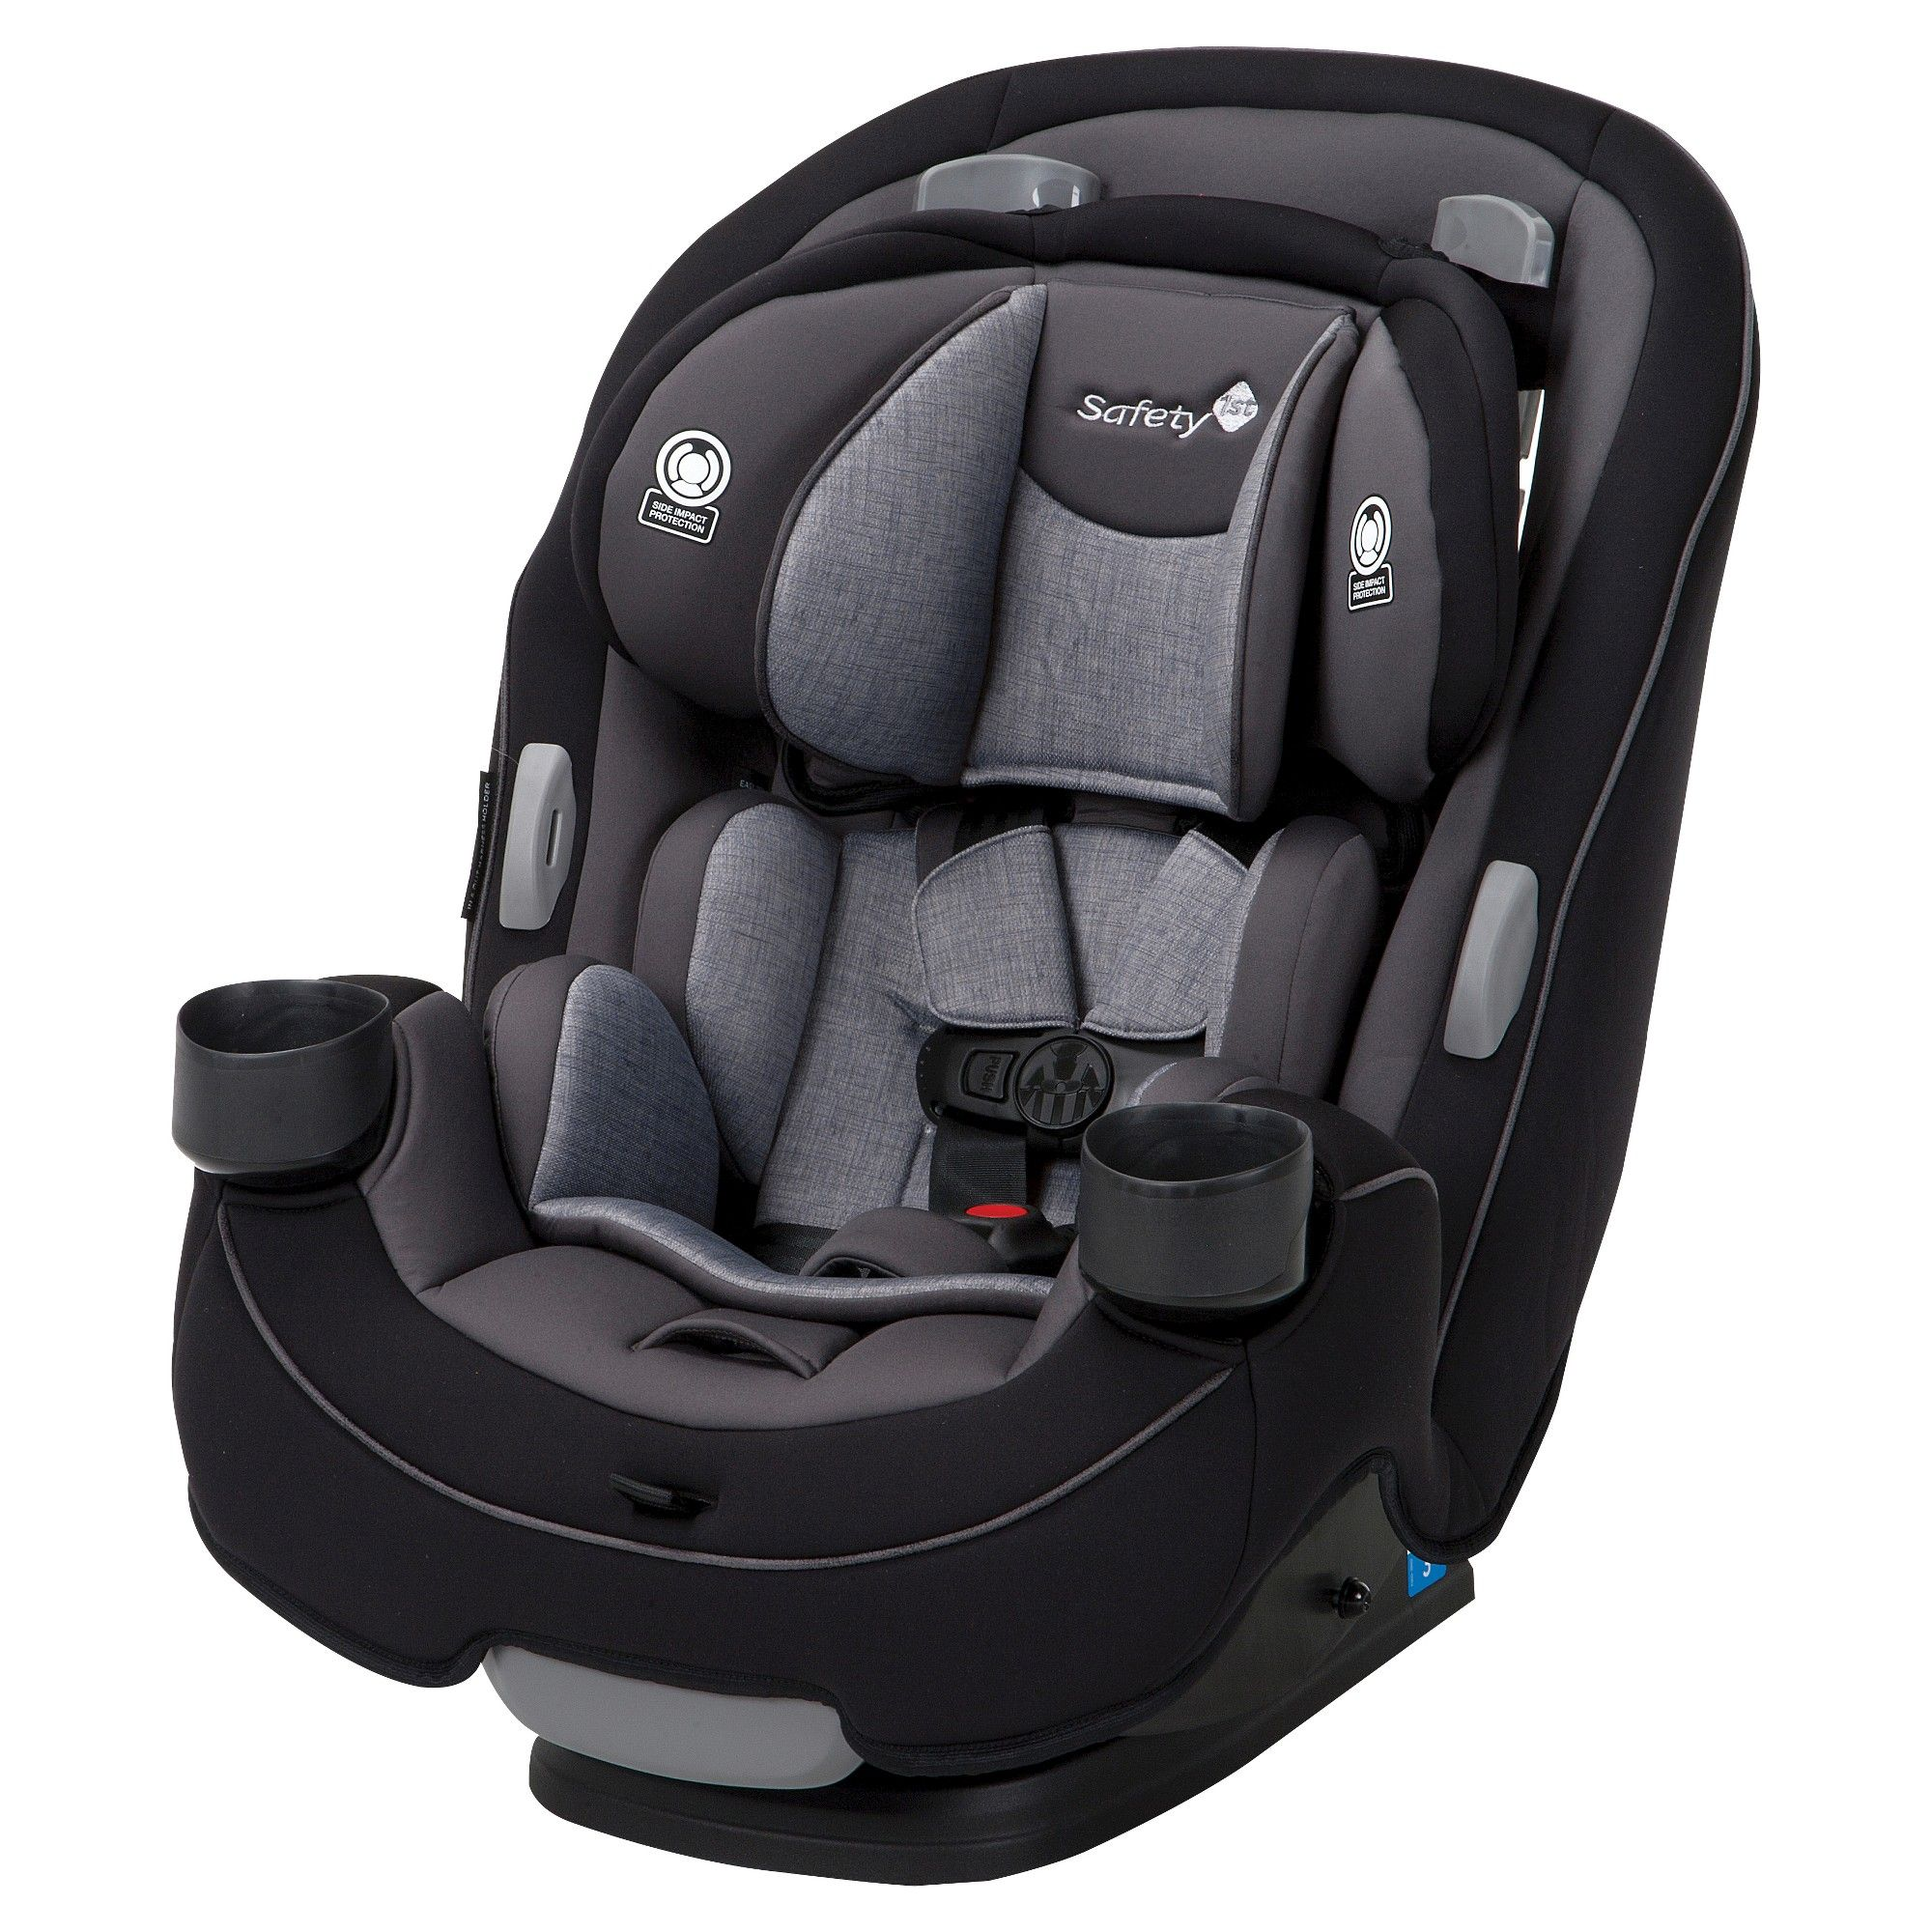 Safety 1st Grow Go 3 In 1 Convertible Car Seat Harvest Moon